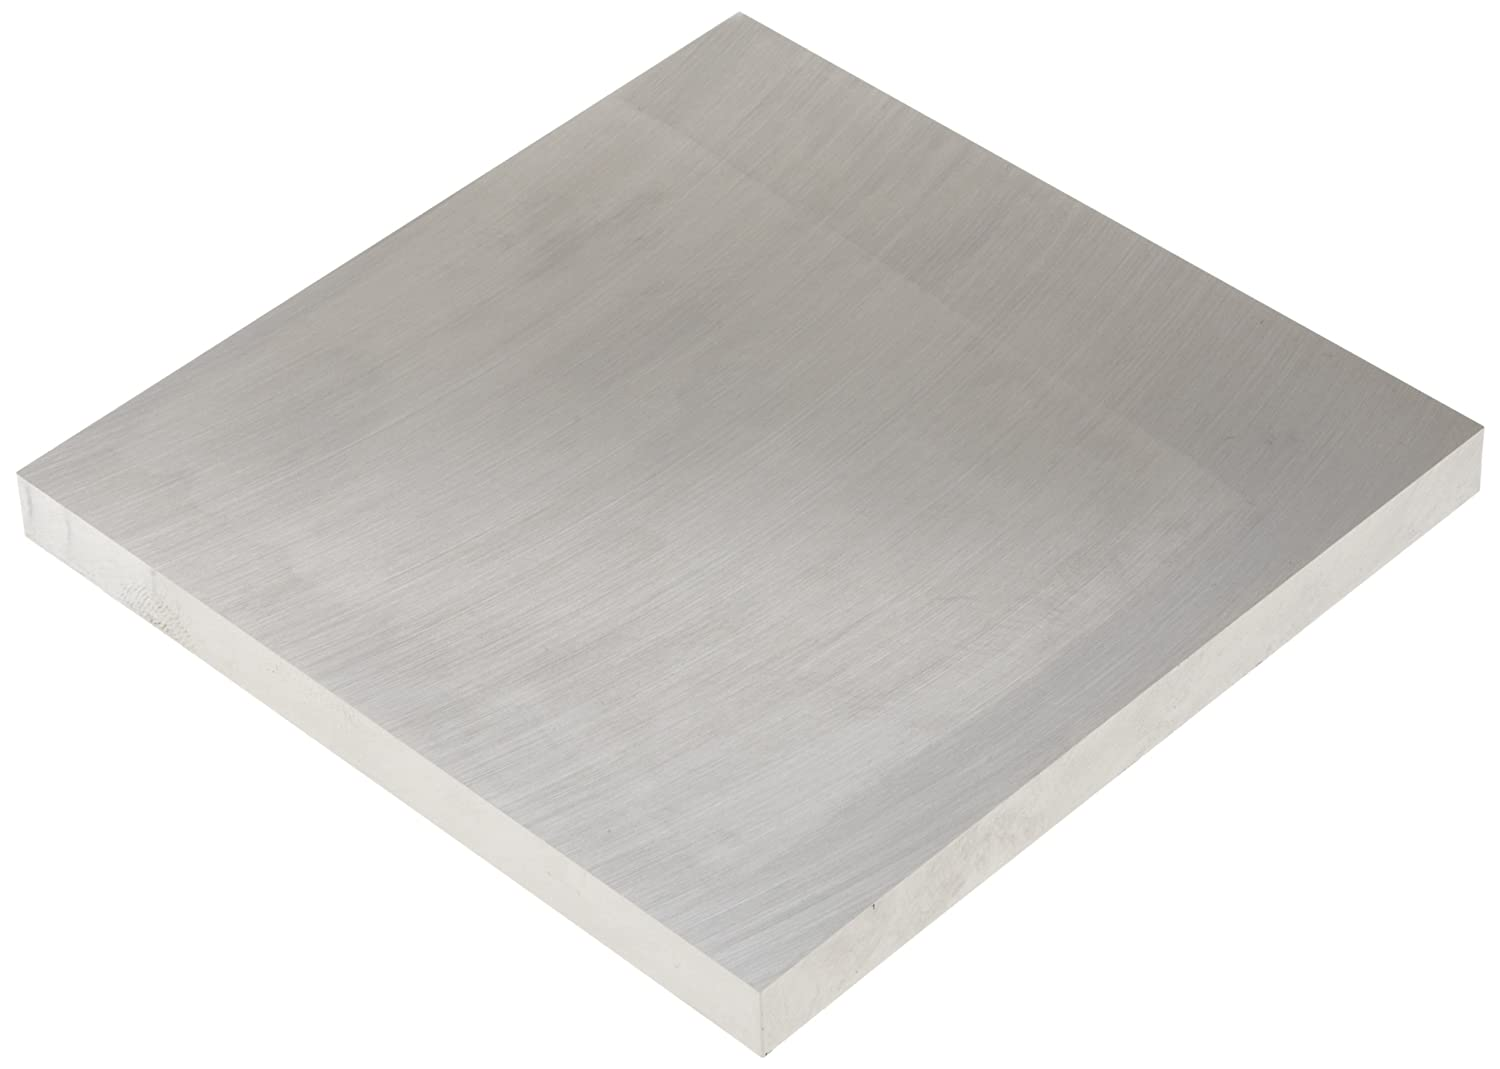 6061 Aluminum Sheet, Precision Ground, T651 Temper, Precision Tolerance, ASTM B209, 0.25' Thickness, 12' Width, 24' Length 0.25 Thickness 12 Width 24 Length Small Parts Inc SB-6061-0250-12-24